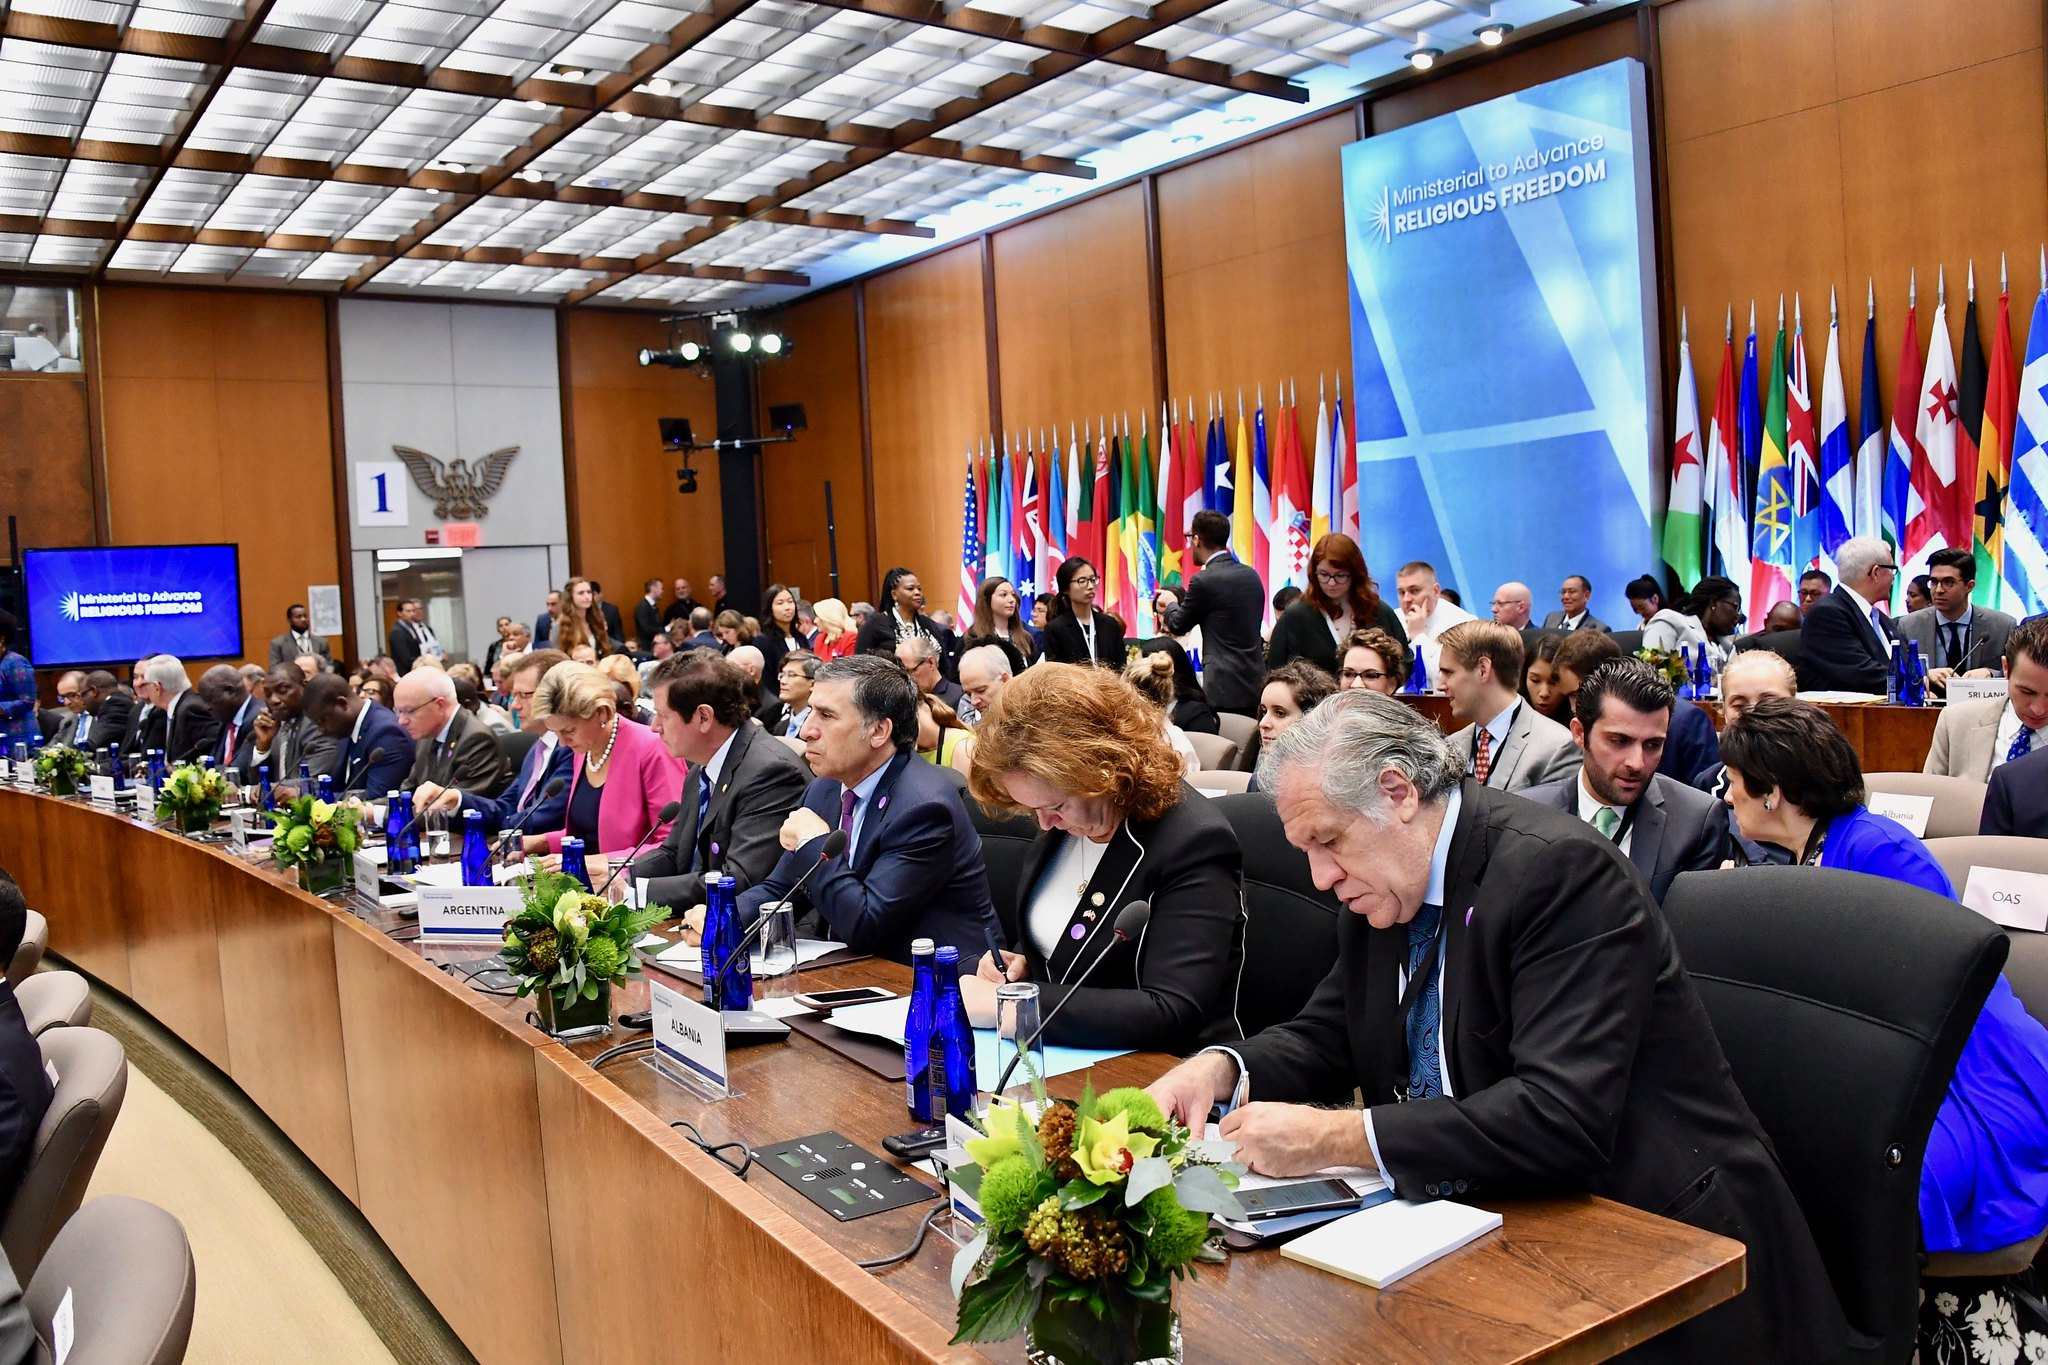 Heads of Delegates Participate in the Ministerial